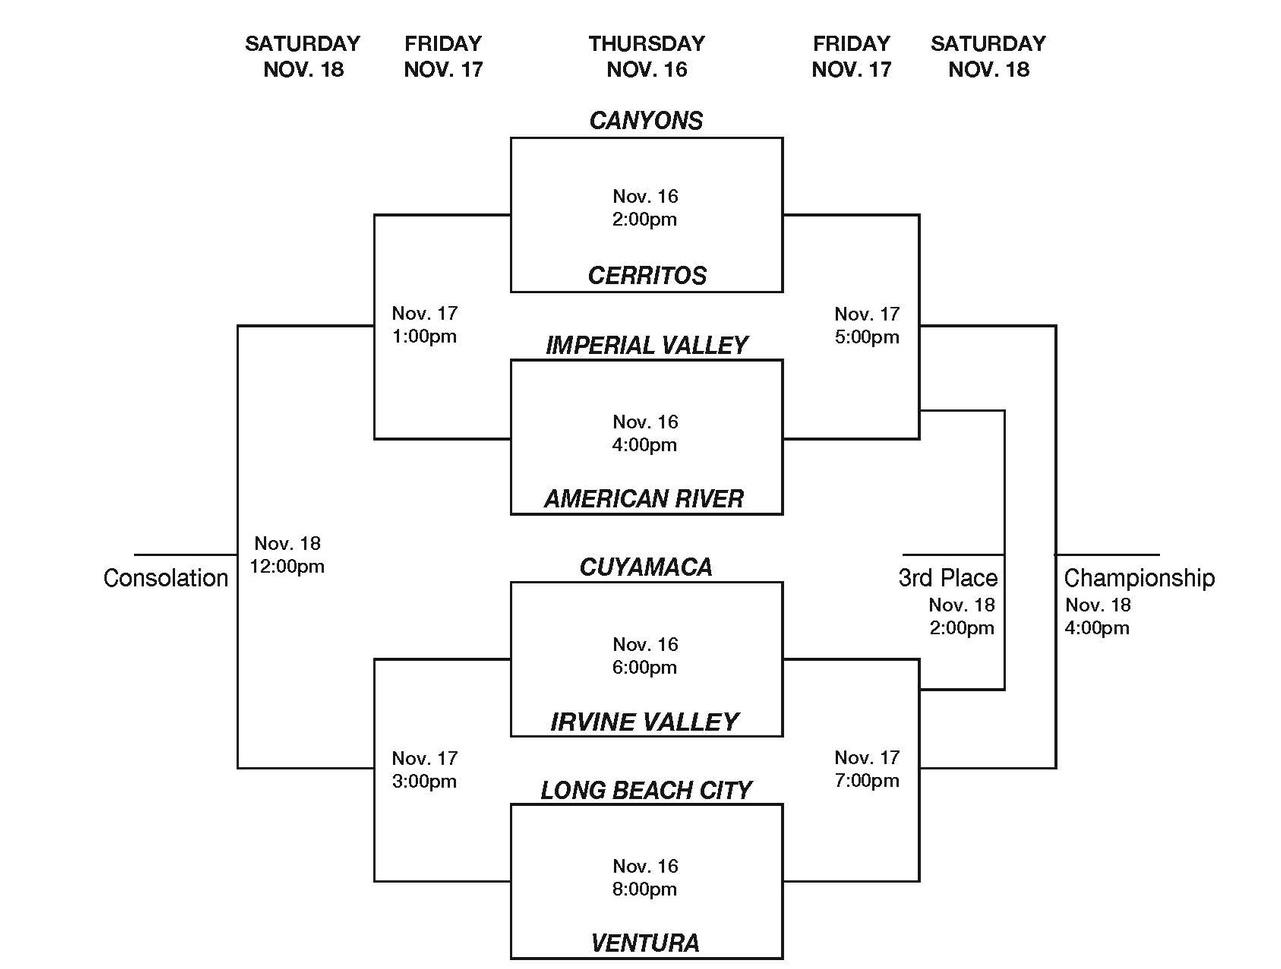 Irvine Valley Classic men's basketball tourney starts Thursday